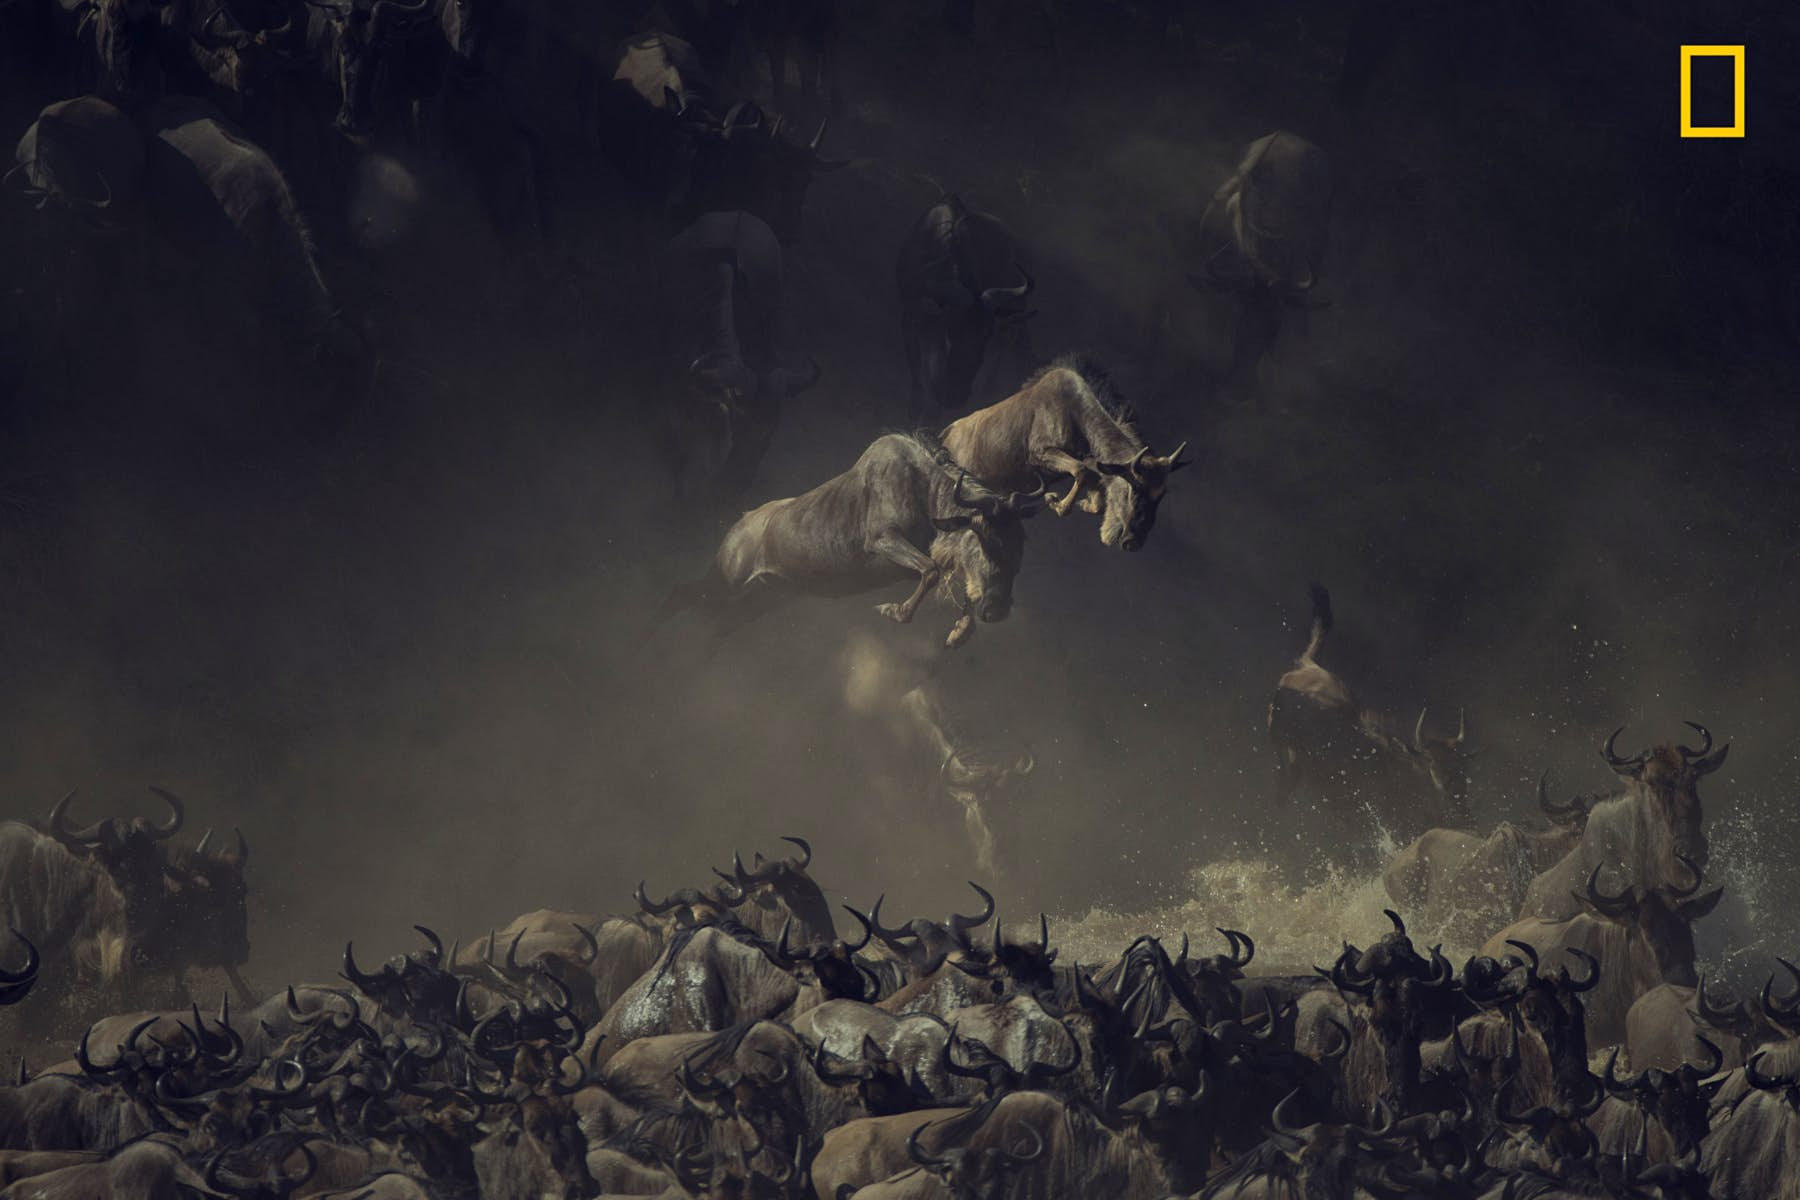 """This is the picture that won first place in the Wildlife category. Photographer Pim Volkers captured it at Tanzania's Mara river early in the morning, when a herd of wildebeests crossed it. """"The layering of dust, shade and sun over the chaos of wildebeests kicking up water gives this picture a sense of mystique and allure, almost like an old painting,"""" it reads in the caption provided by the photographer to National Geographic. Image courtesy of Pim Volkers/2018 National Geographic Photo Contest"""